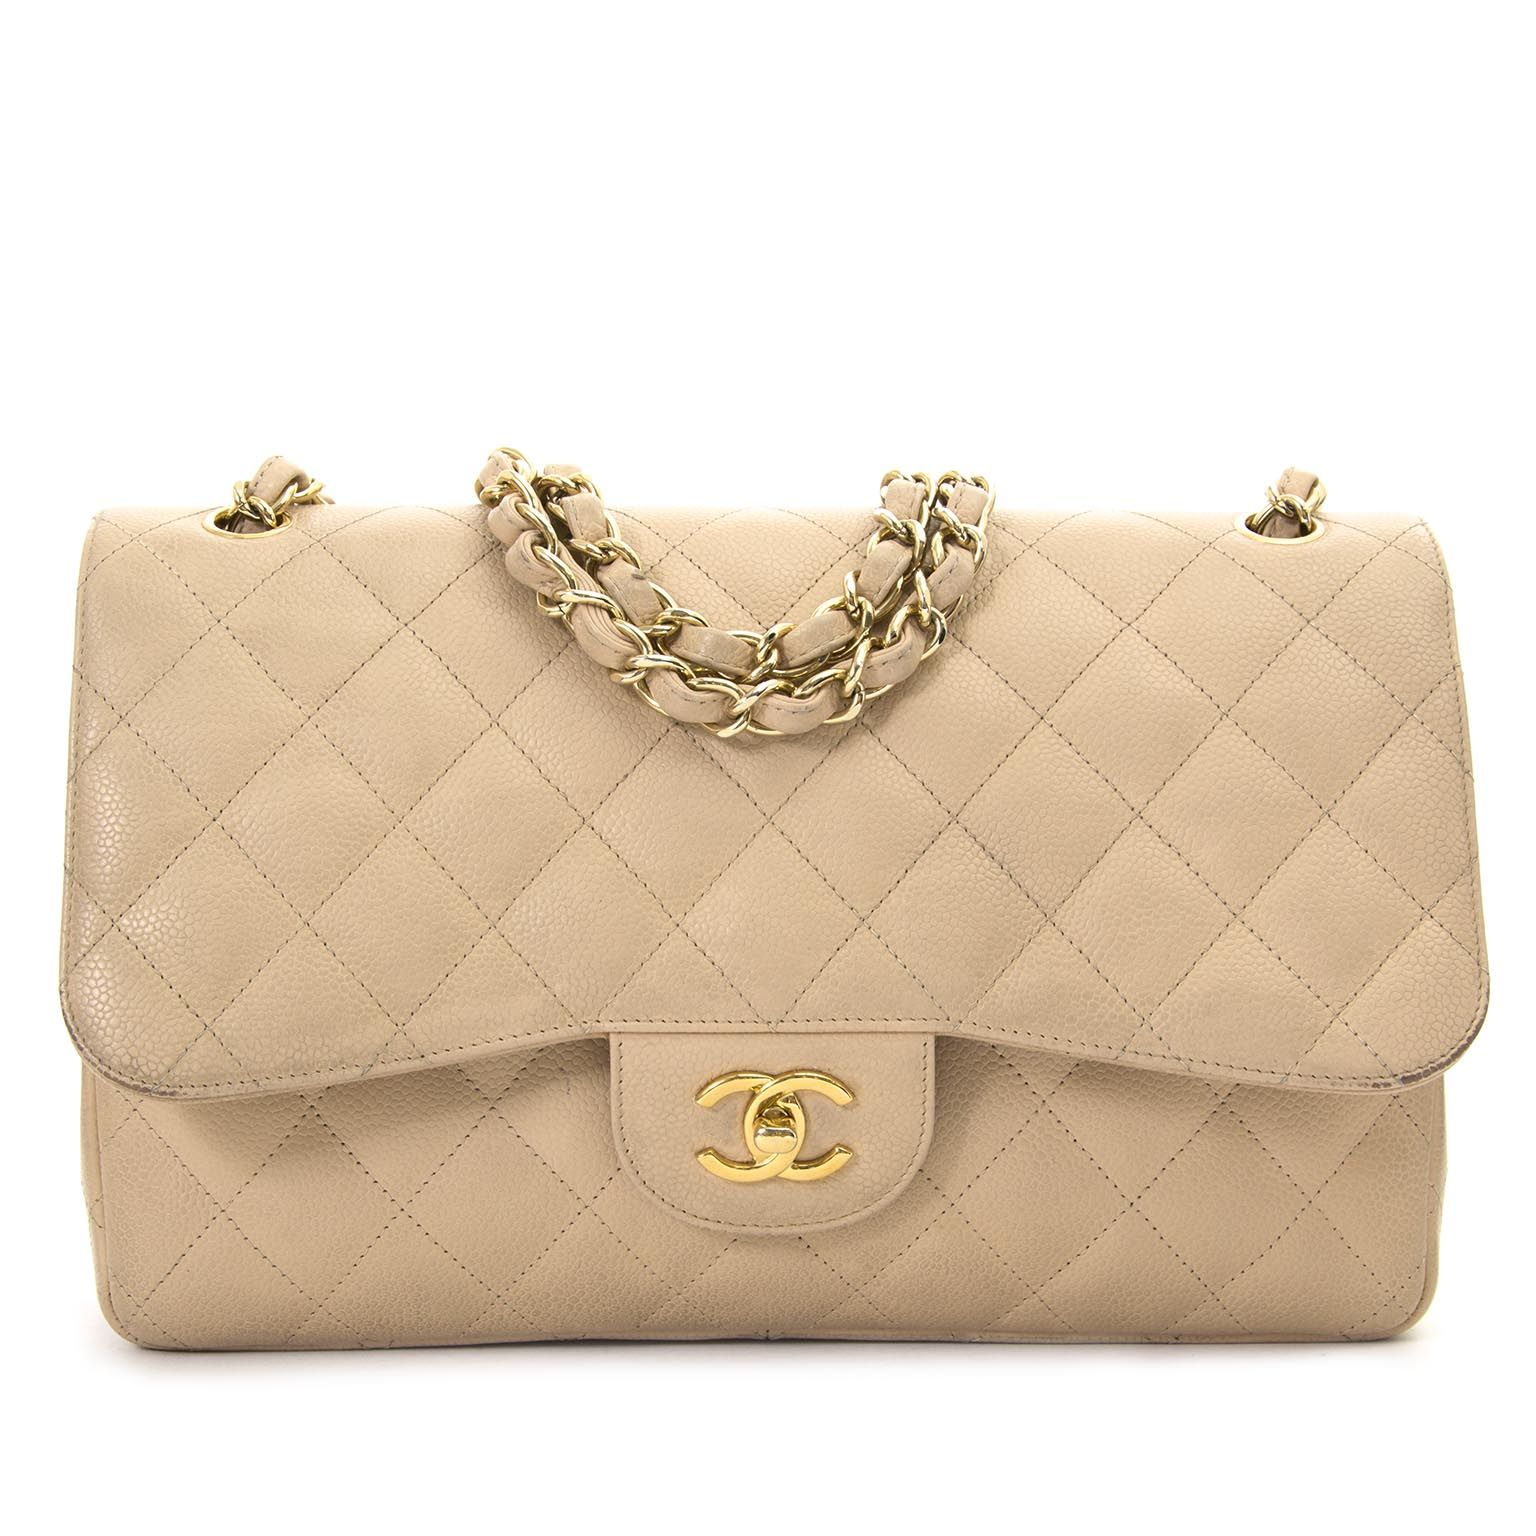 d1e335067761 Chanel Jumbo Beige Double Classic Flap Bag Caviar GHW now for sale at  Labellov vintage webshop.